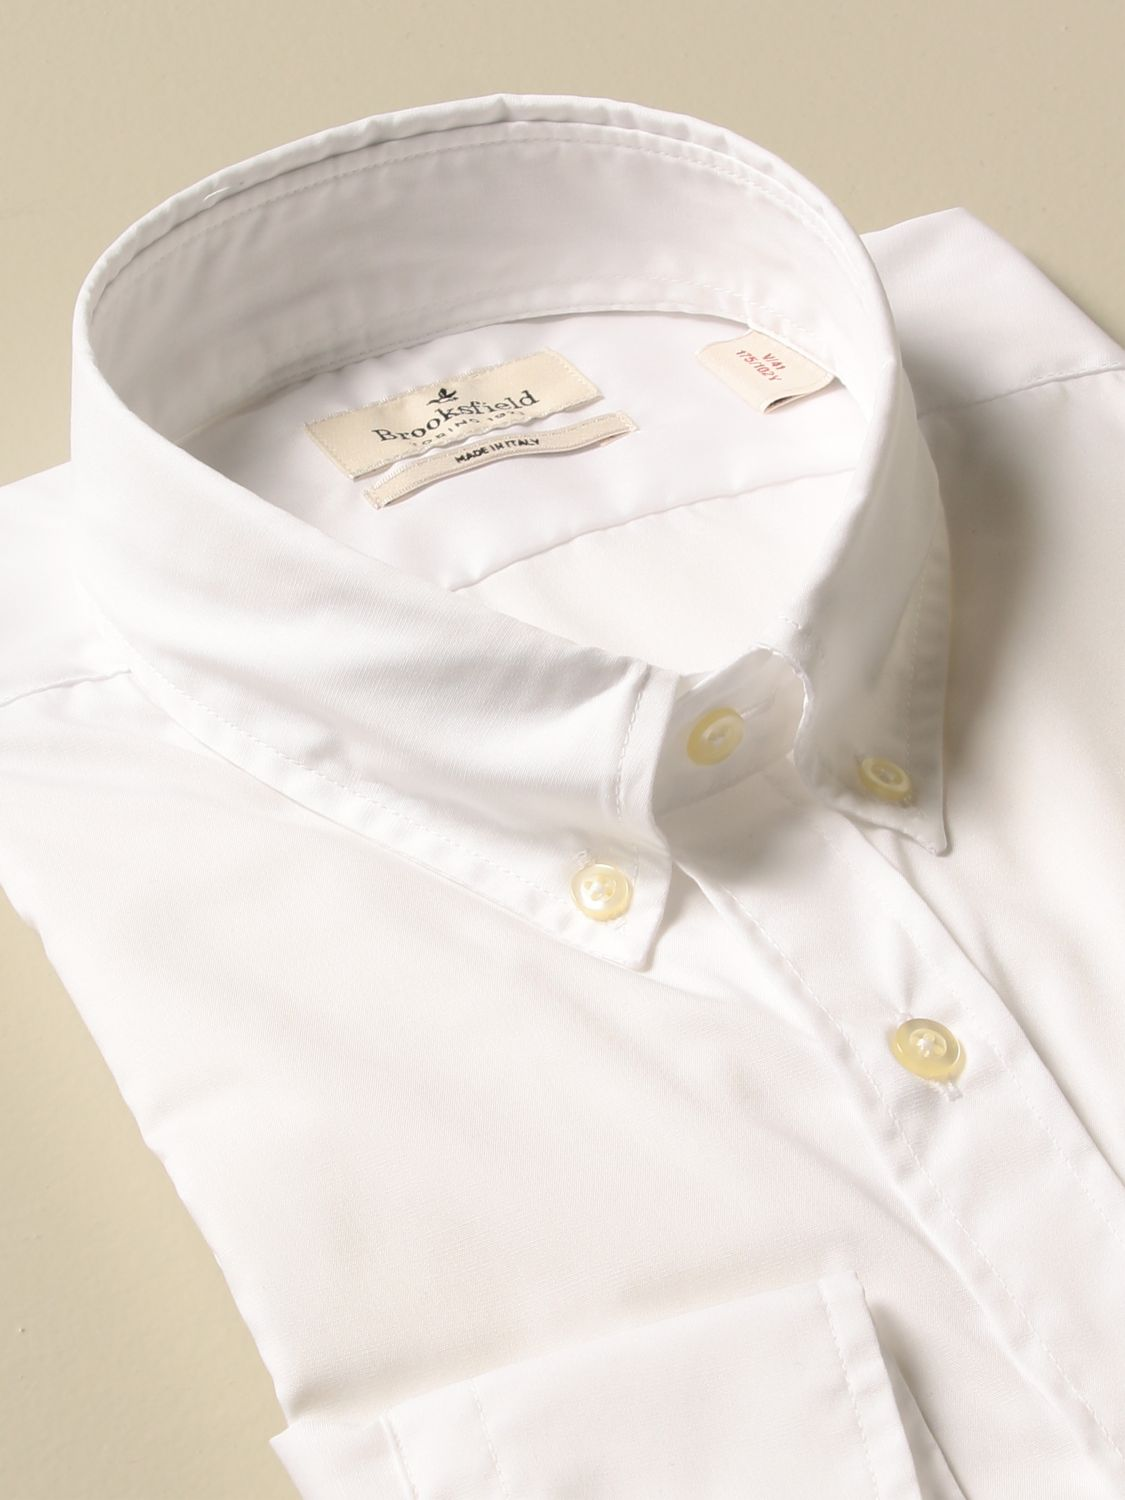 Shirt Brooksfield: Shirt men Brooksfield white 2